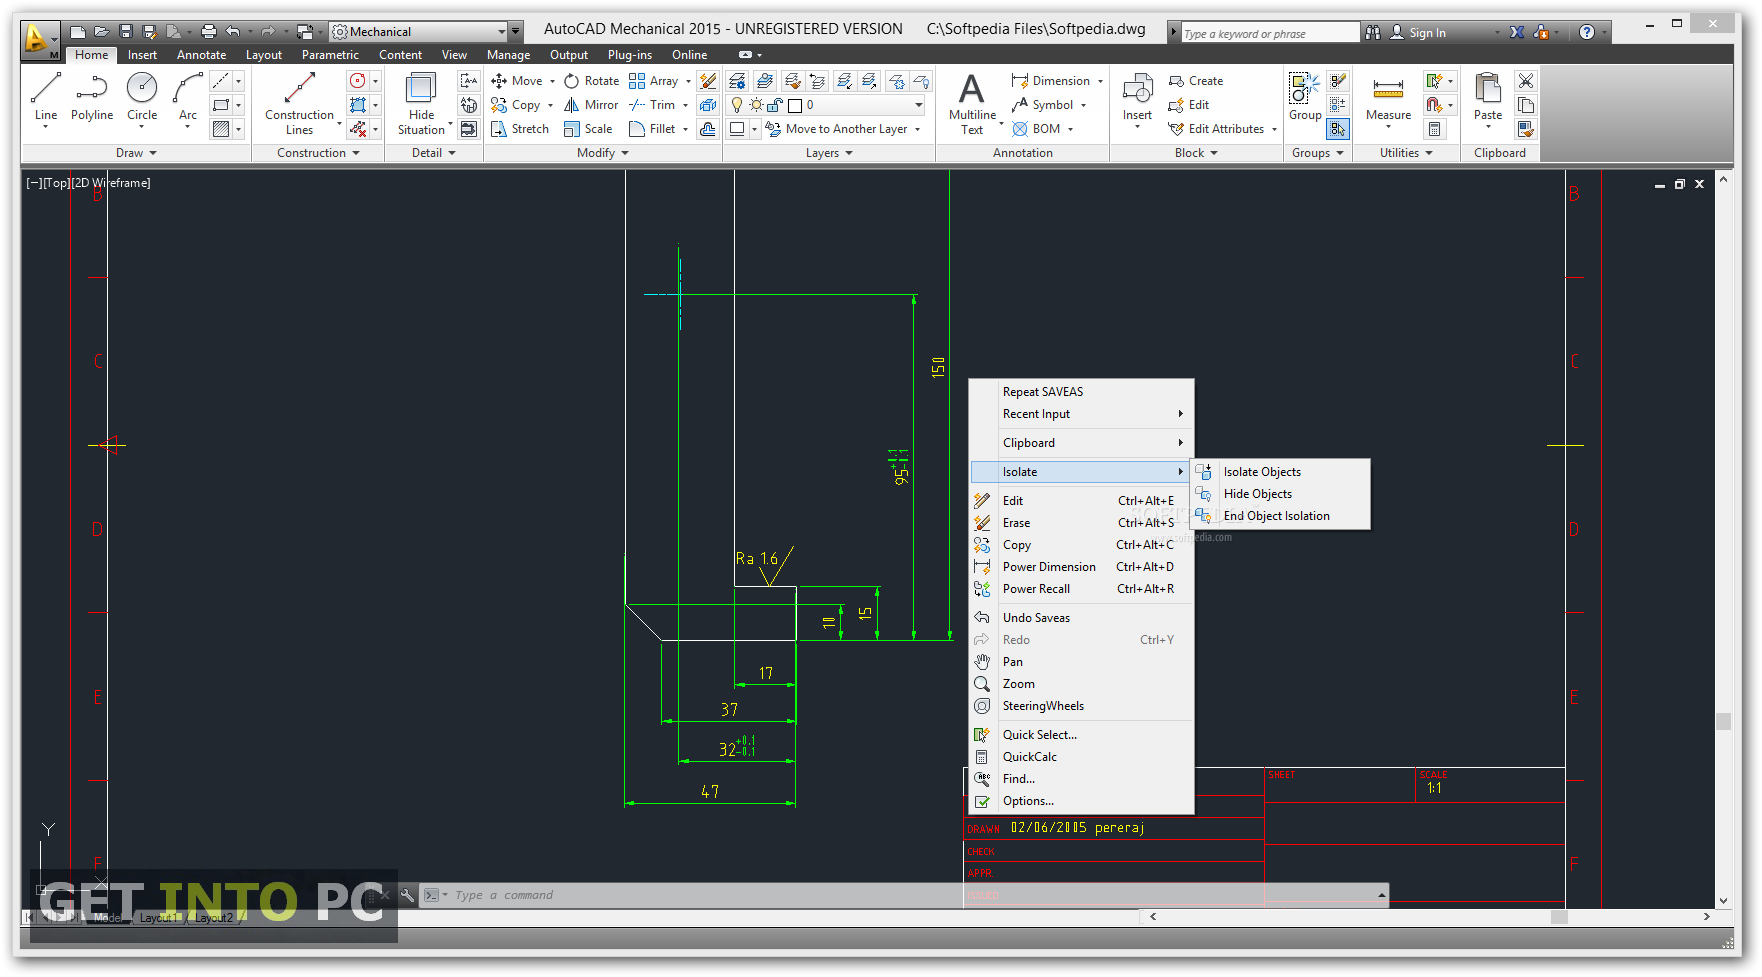 AutoCAD Mechanical 2015 Setup Free Download